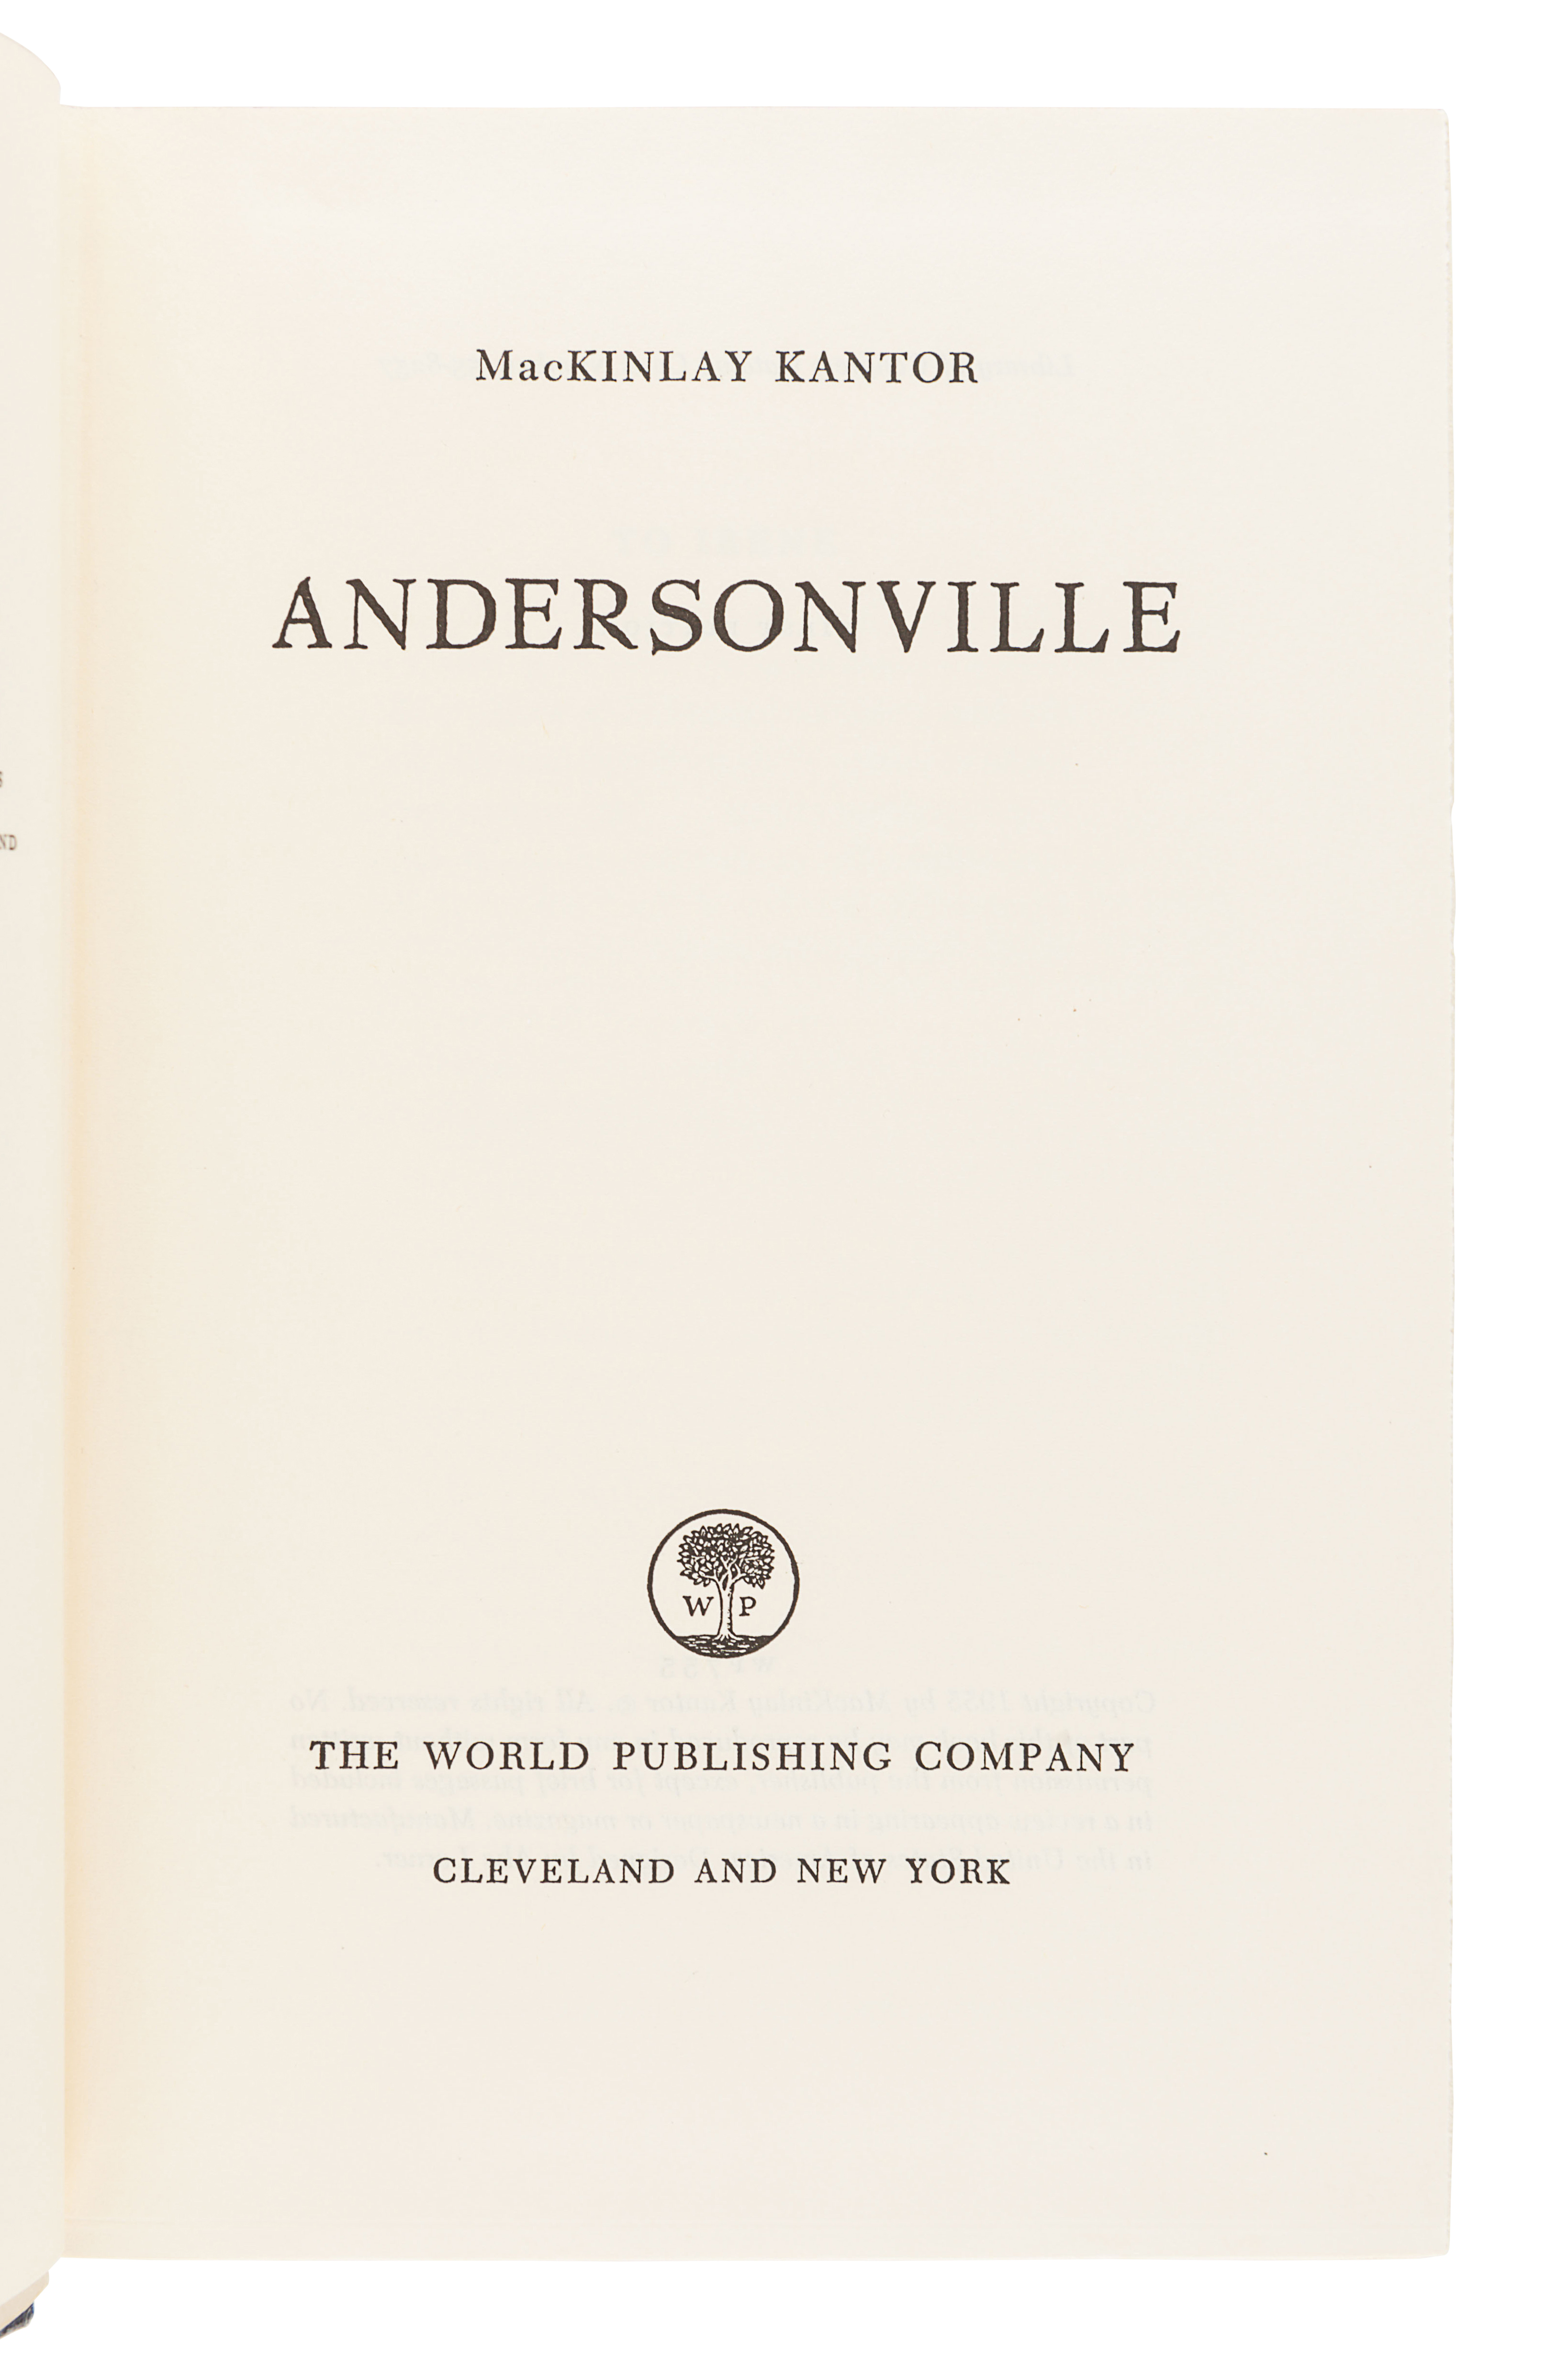 [CIVIL WAR]. KANTOR, MacKinlay (1904-1977). Andersonville. Cleveland and New York: The World Publish - Image 2 of 2